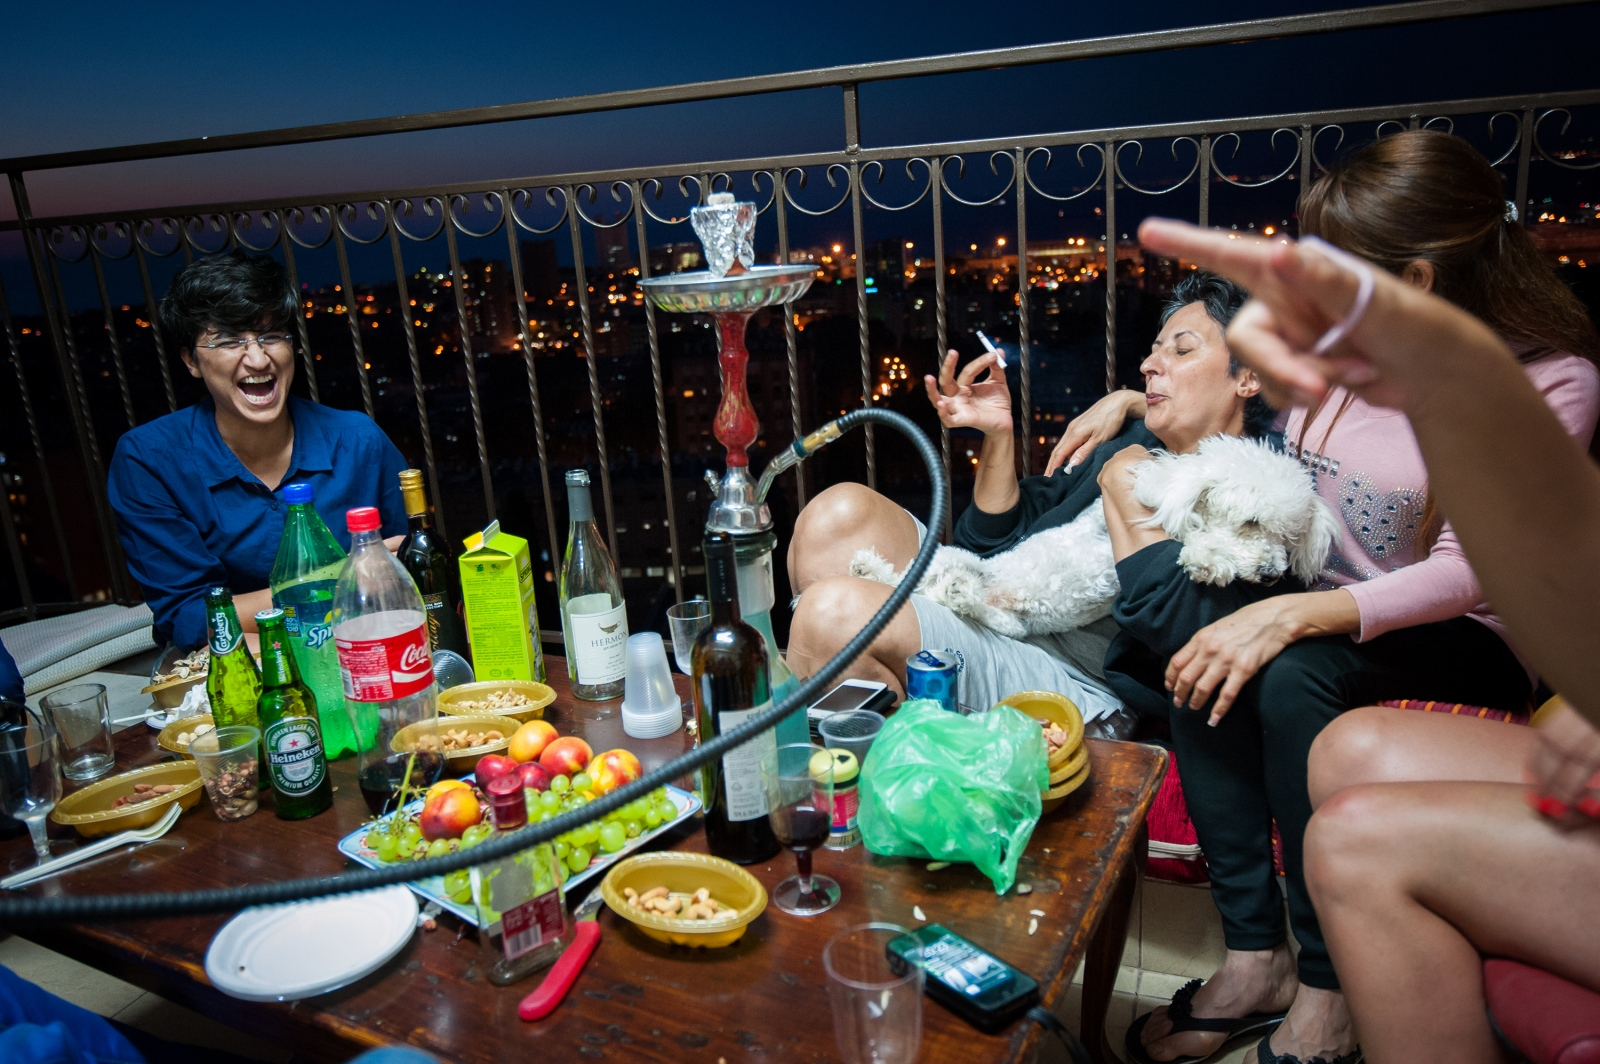 Hasna, who doesn't smoke, is teased by friends and co-workers as she takes a drag of a cigarette. She hosted the group of women at her condo, which overlooks the city. Once the war in Gaza began, Hasna spent less time socializing.